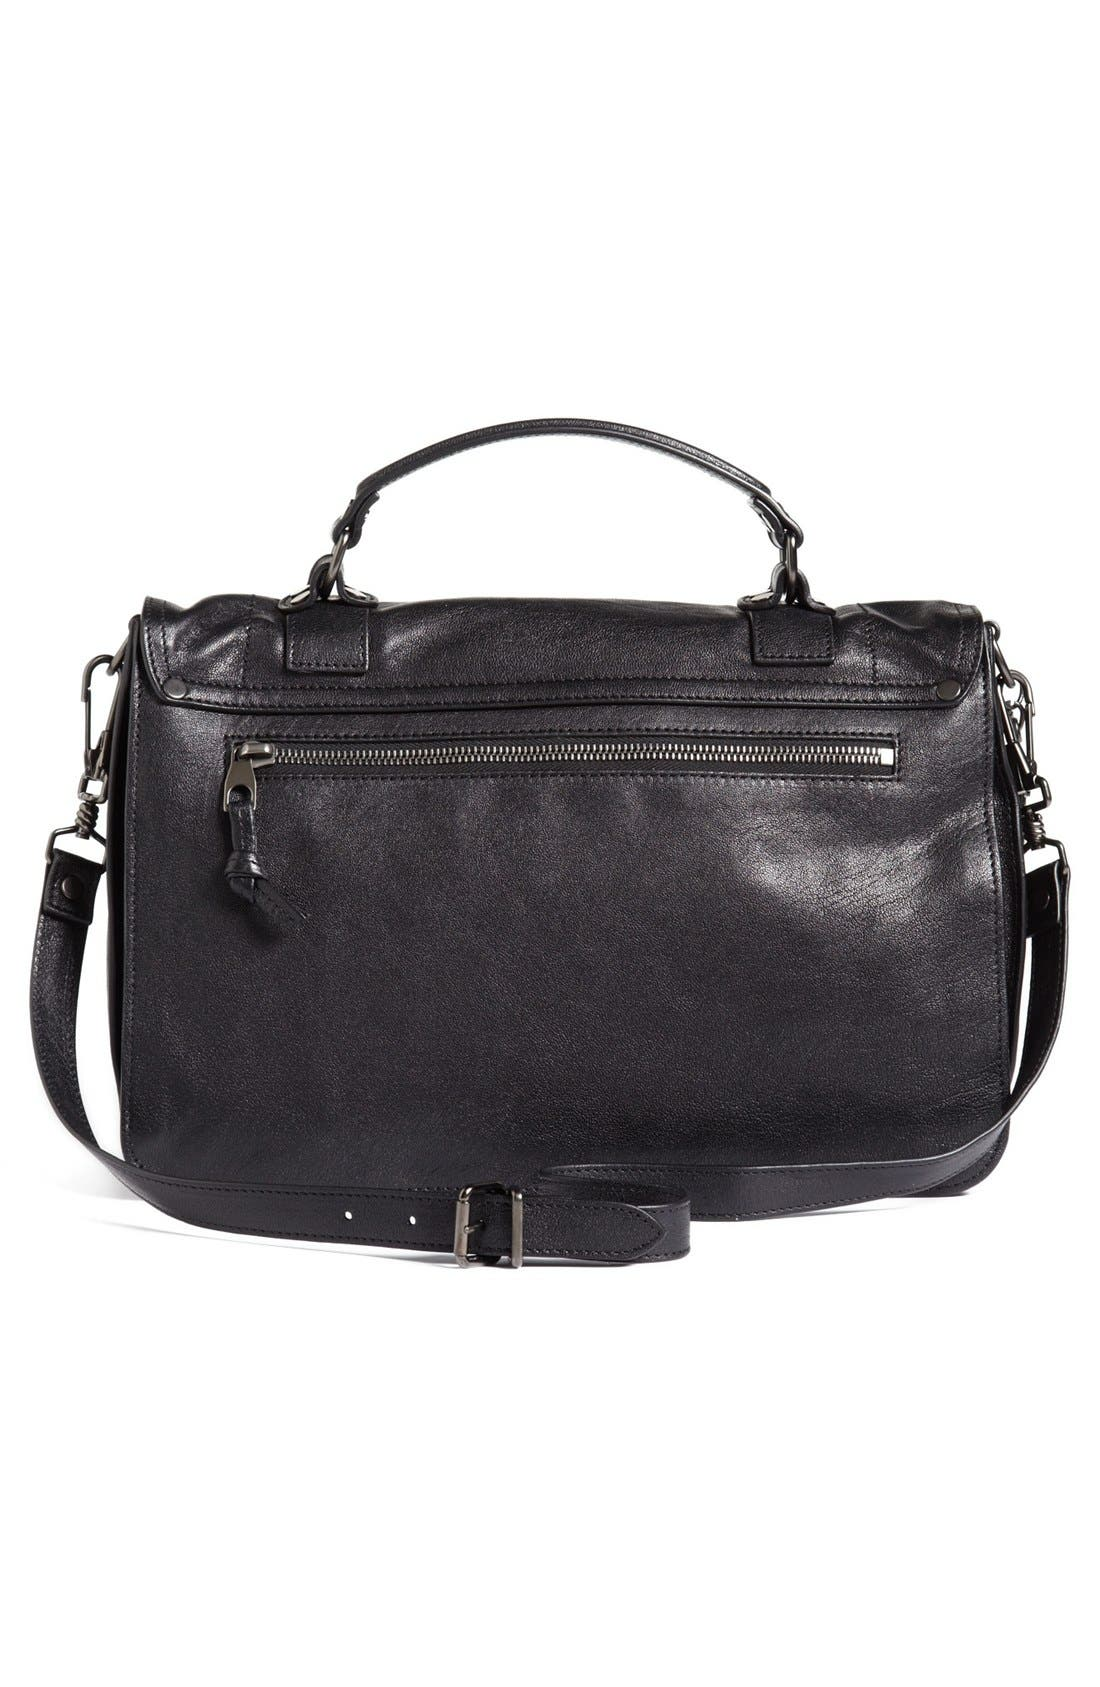 Alternate Image 3  - Proenza Schouler 'Medium PS1' Satchel